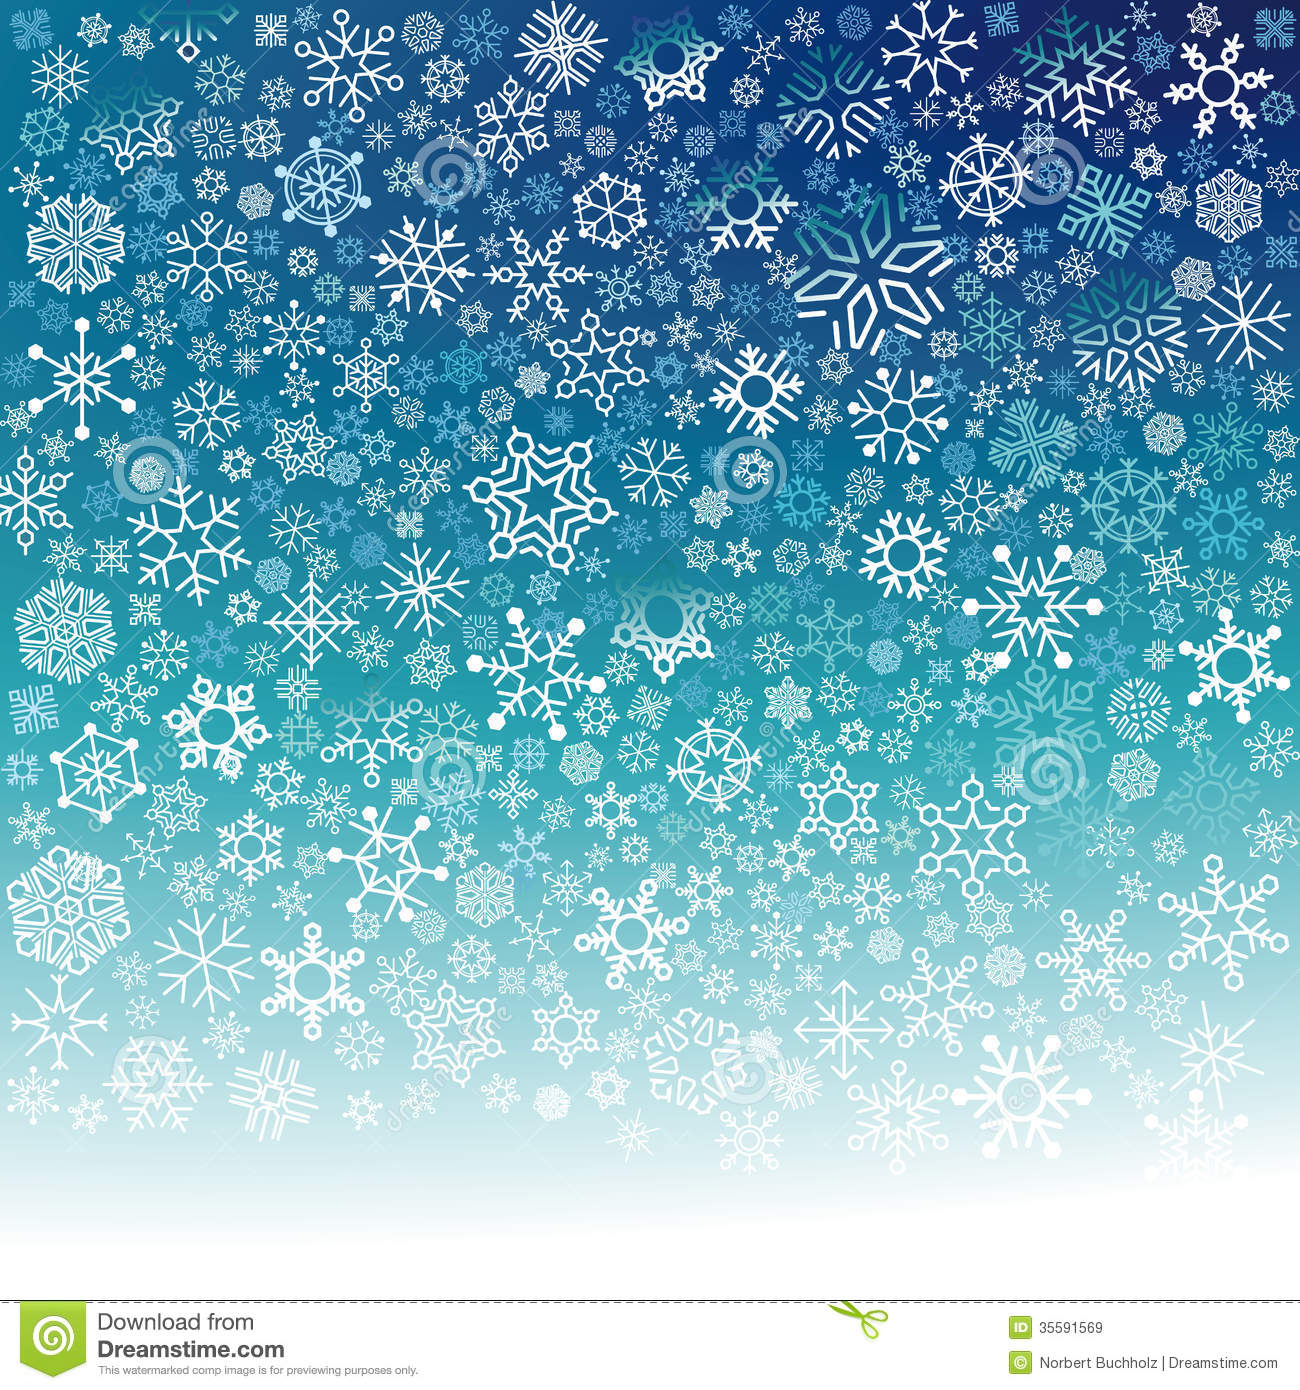 Free 3d Snow Falling Wallpaper Falling Snowflakes Royalty Free Stock Images Image 35591569